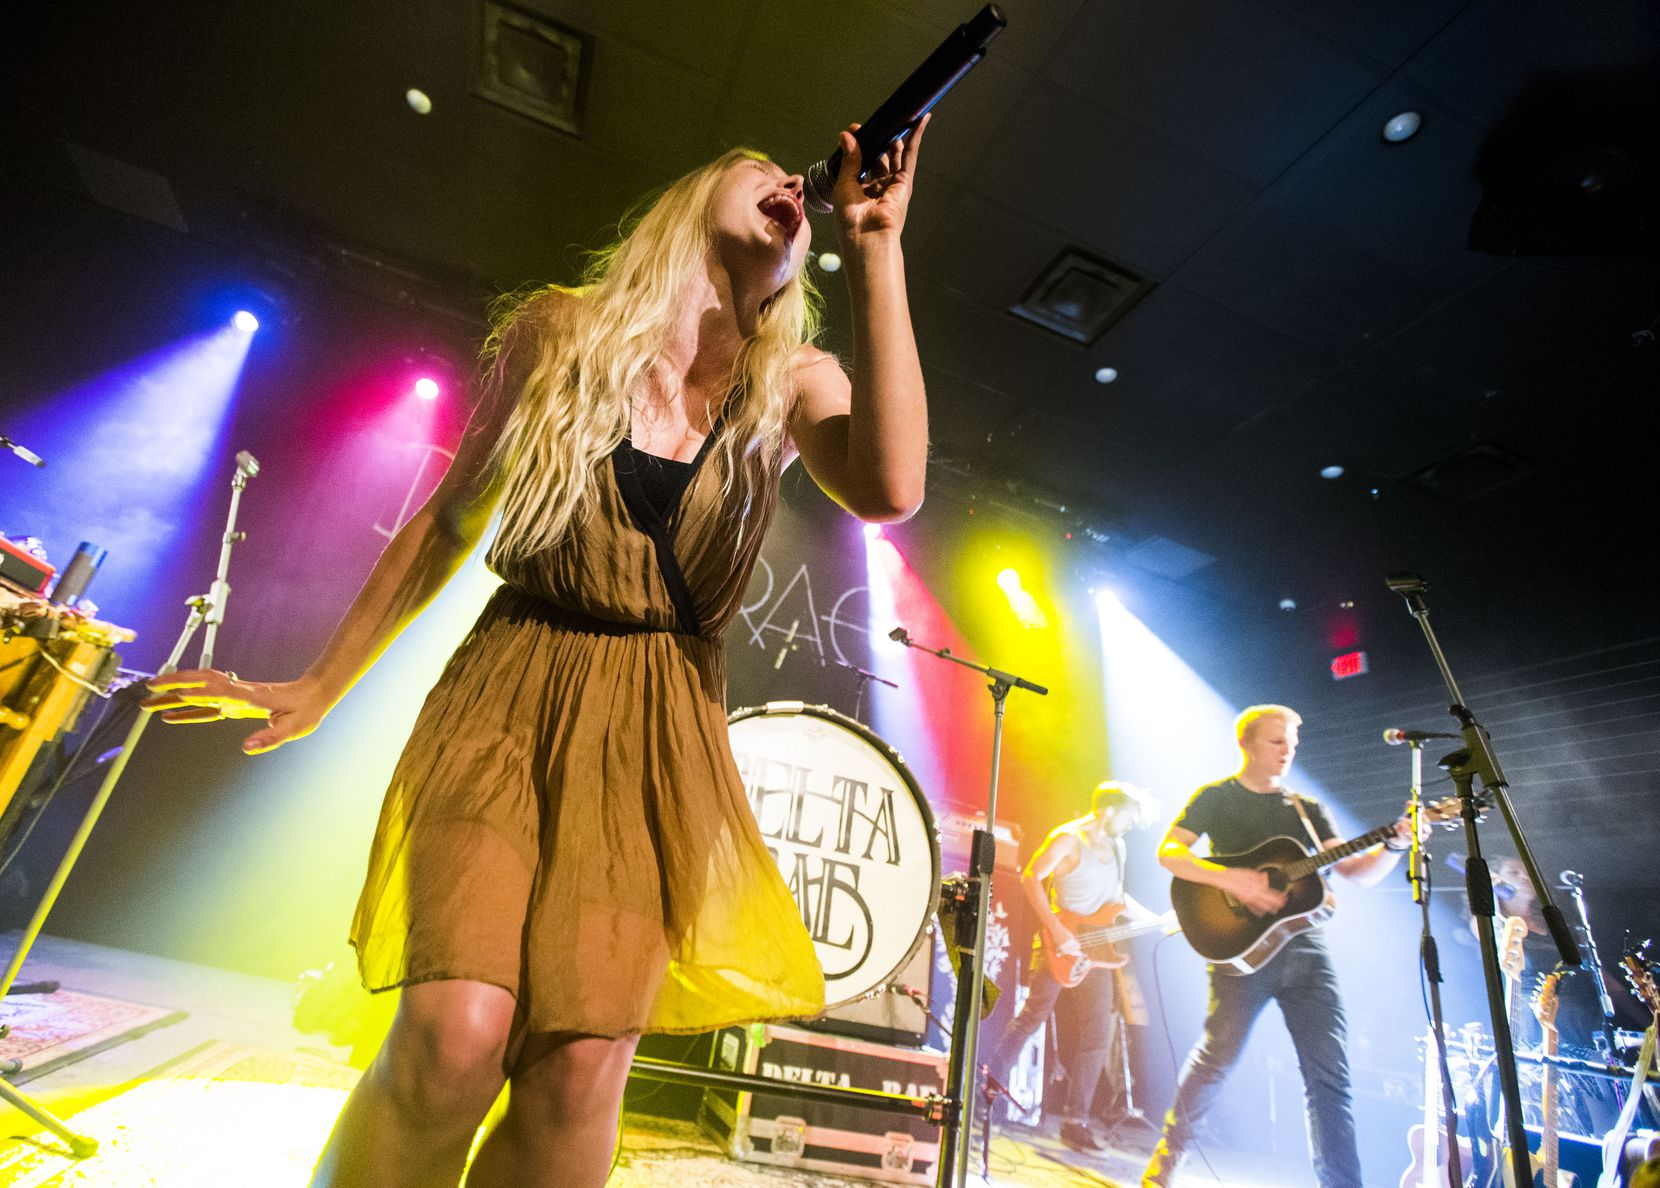 Vocalist Brittany Holljes of Delta Rae performs on Thursday, July 16, 2015 at Kessler Theater in Dallas.